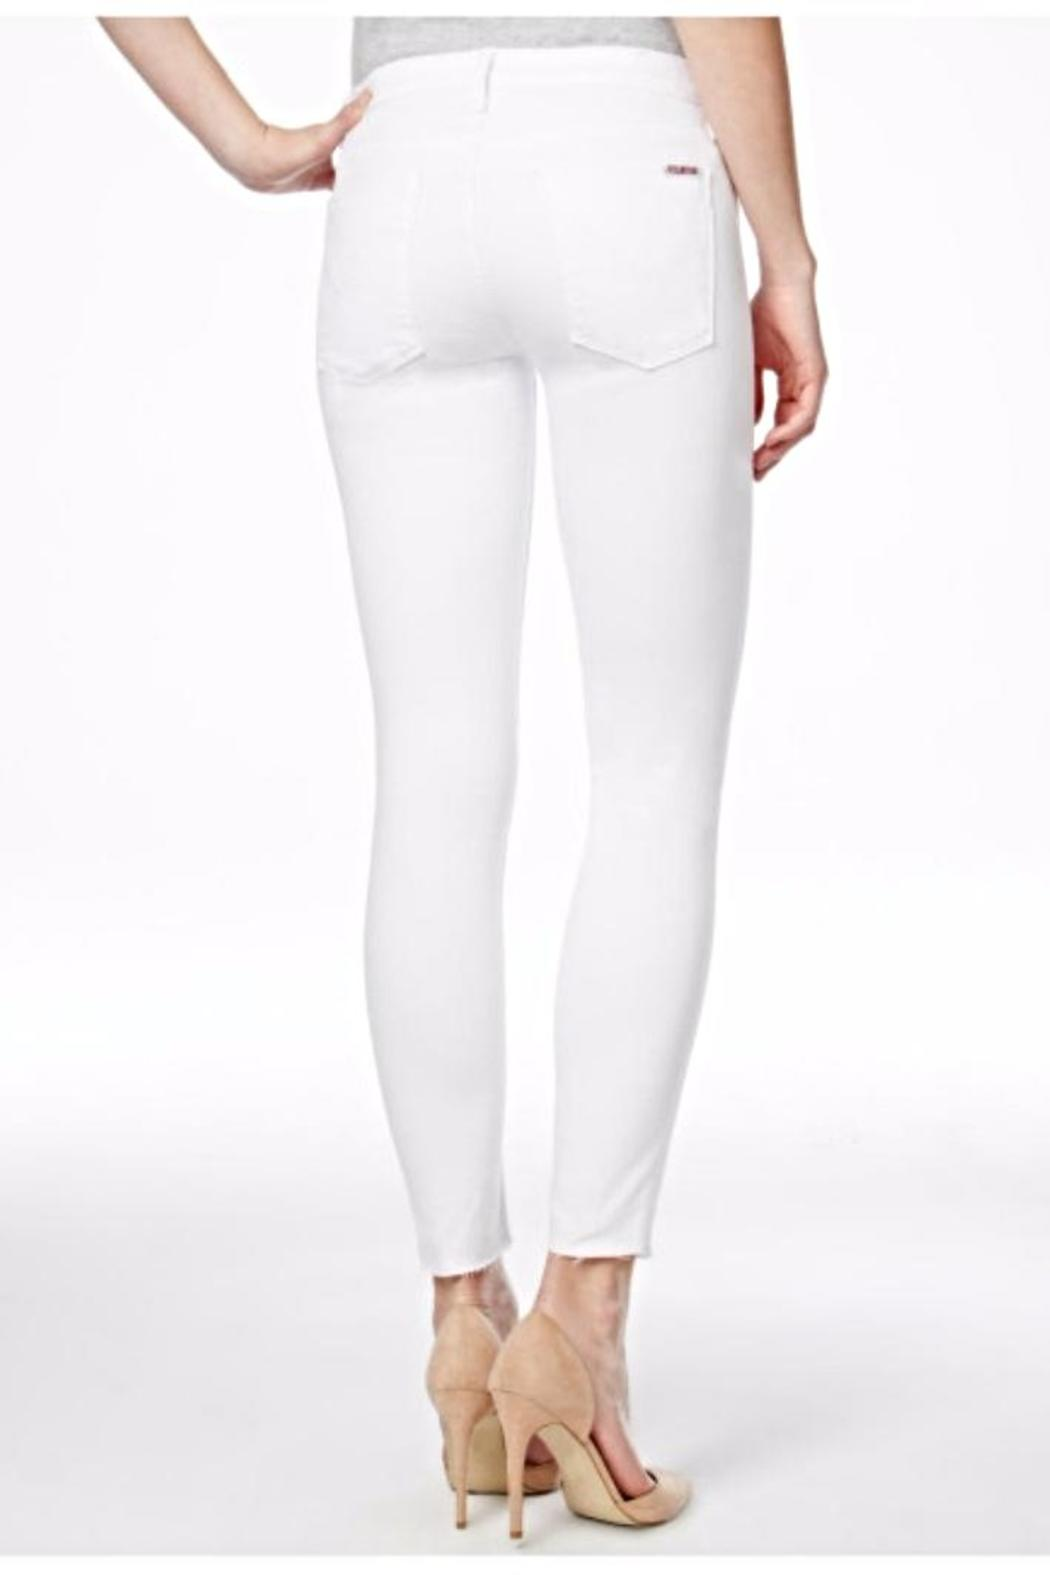 Hudson Jeans Nico Mid Rise White Jeans - Front Full Image